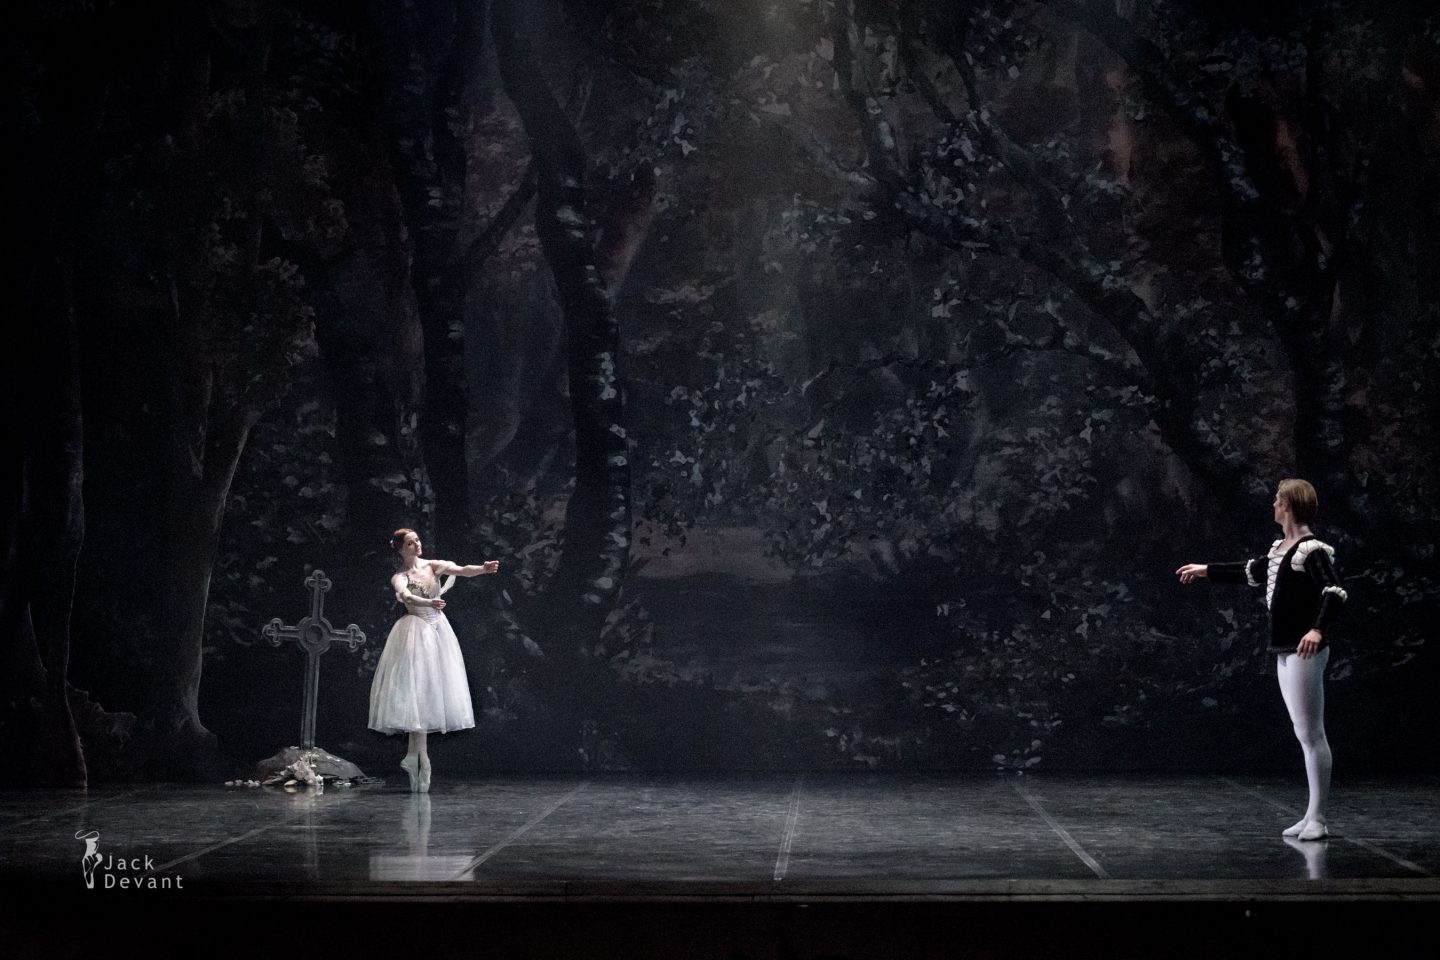 Alena Shkatula as Giselle and Denis Klimuk as Albrecht in Giselle Act 2 returning to grave